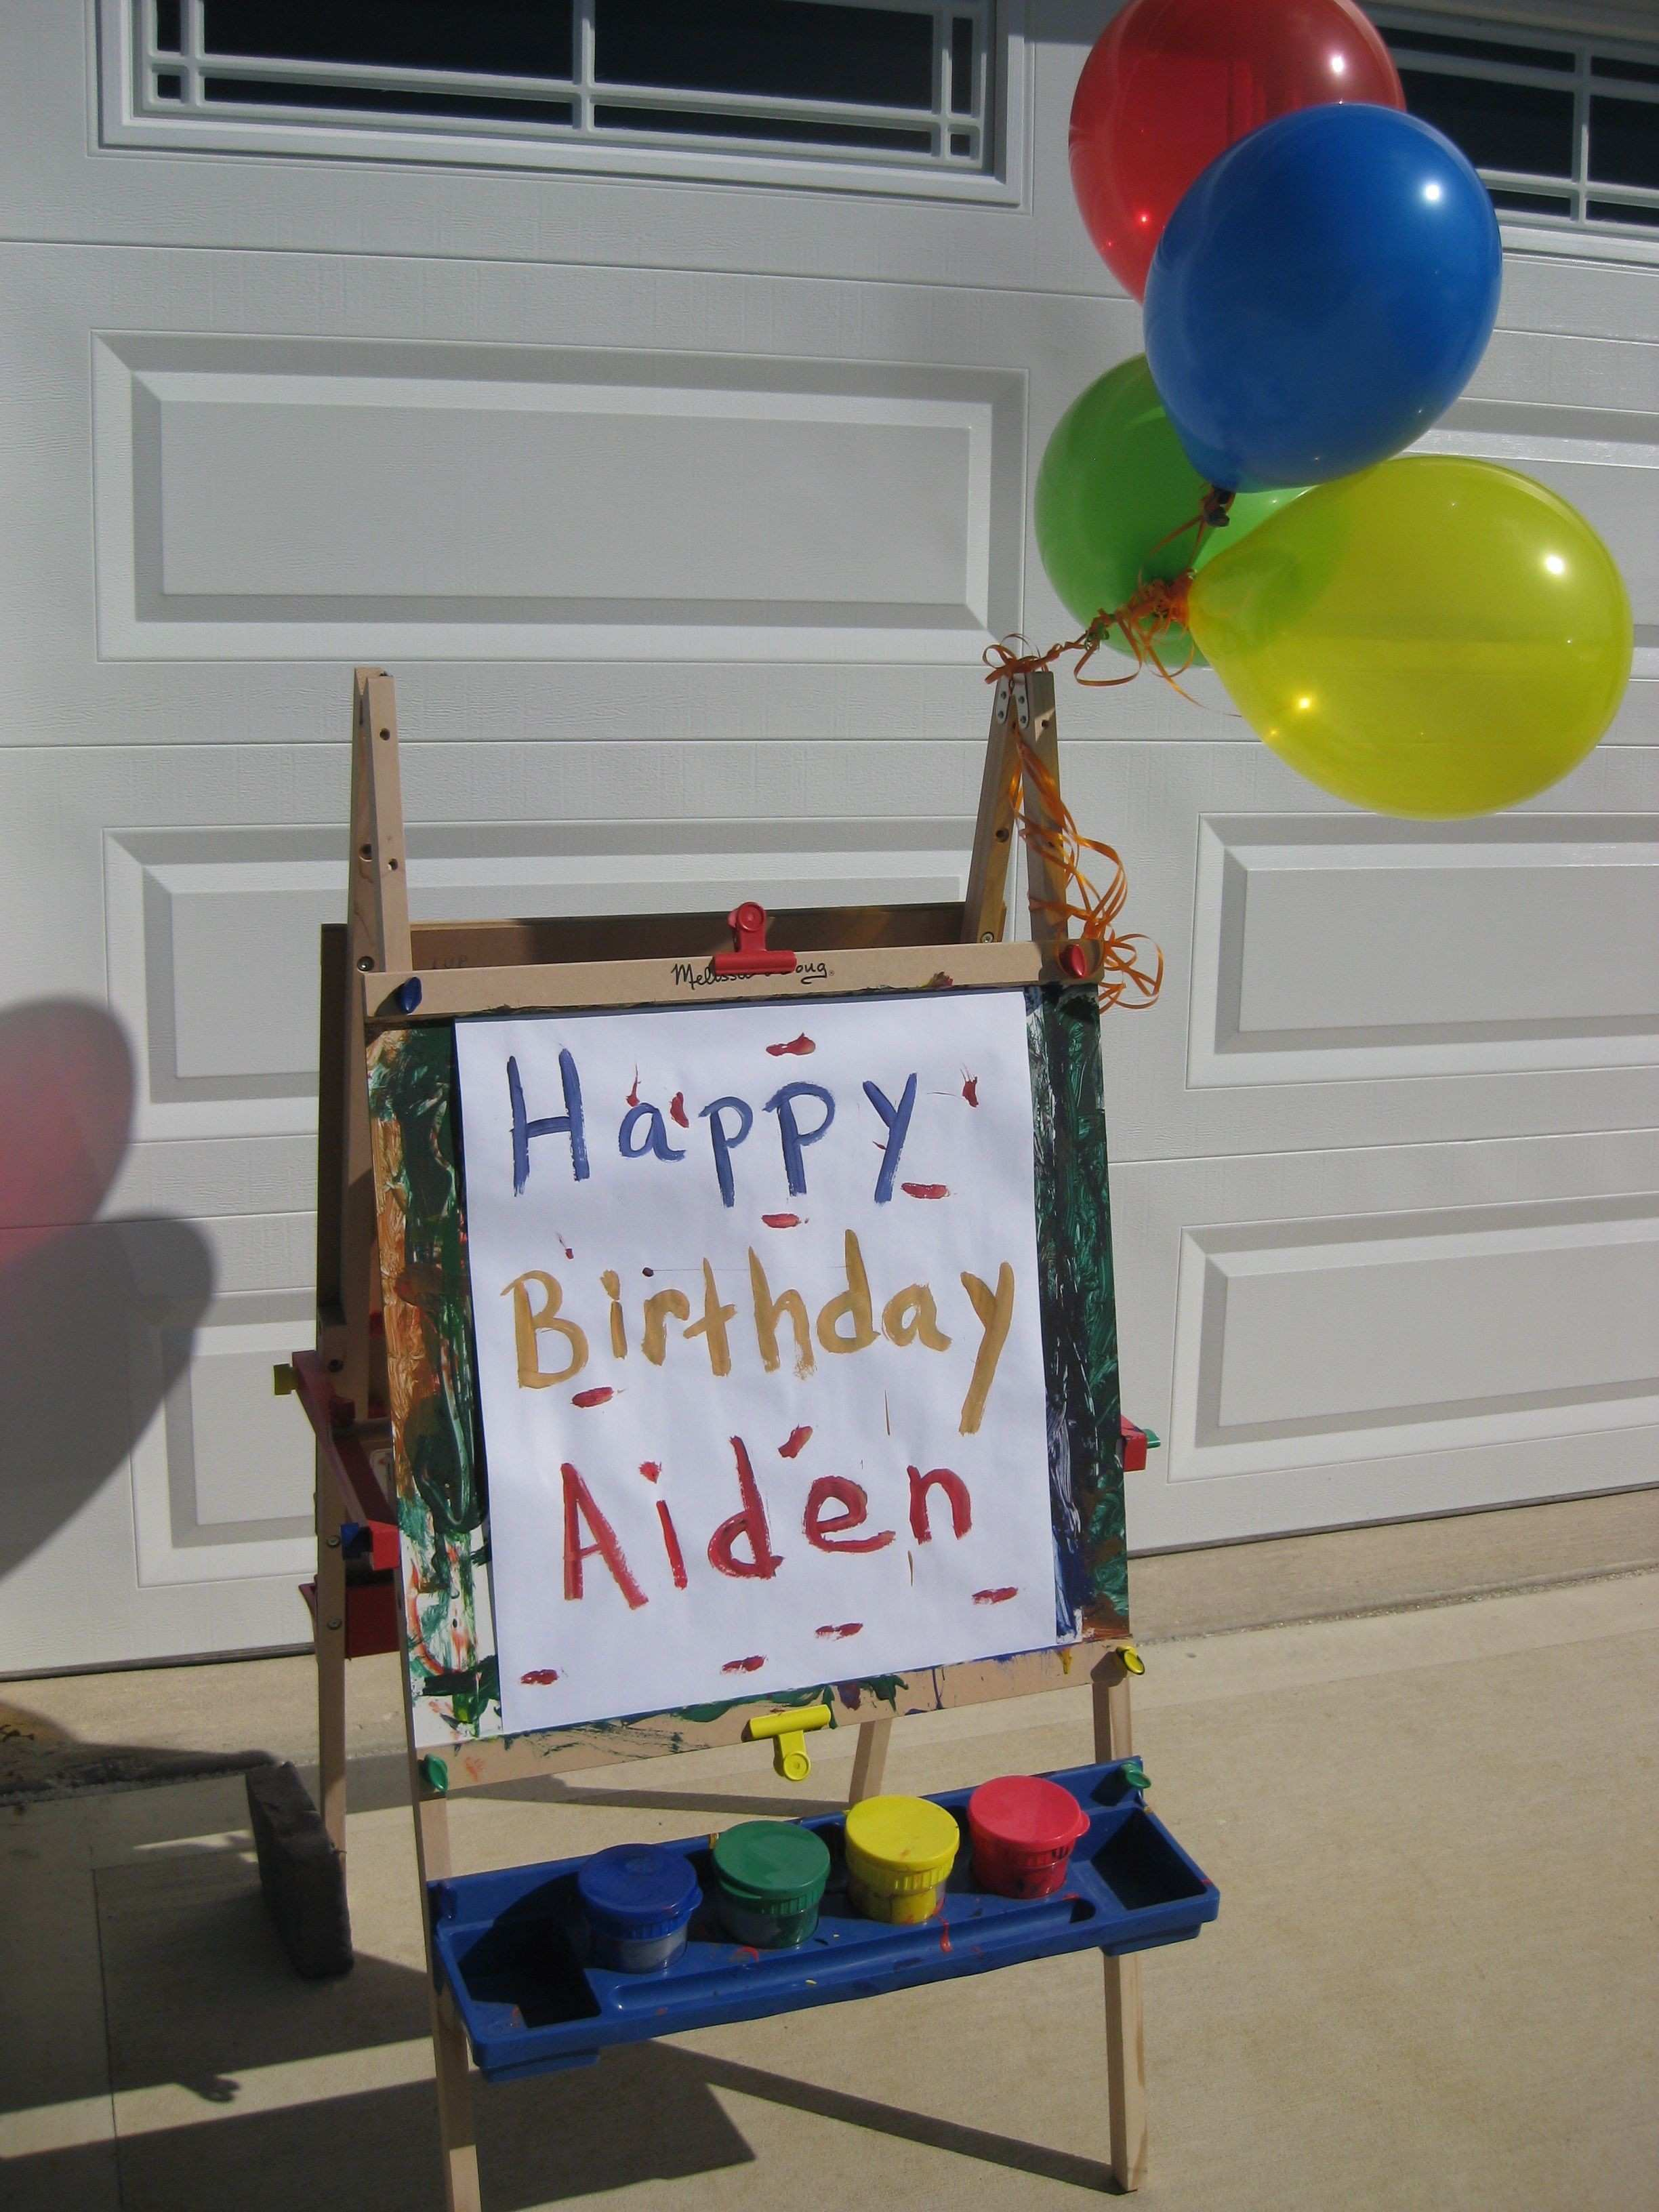 Outdoor decor Art easel with birthday message and balloons